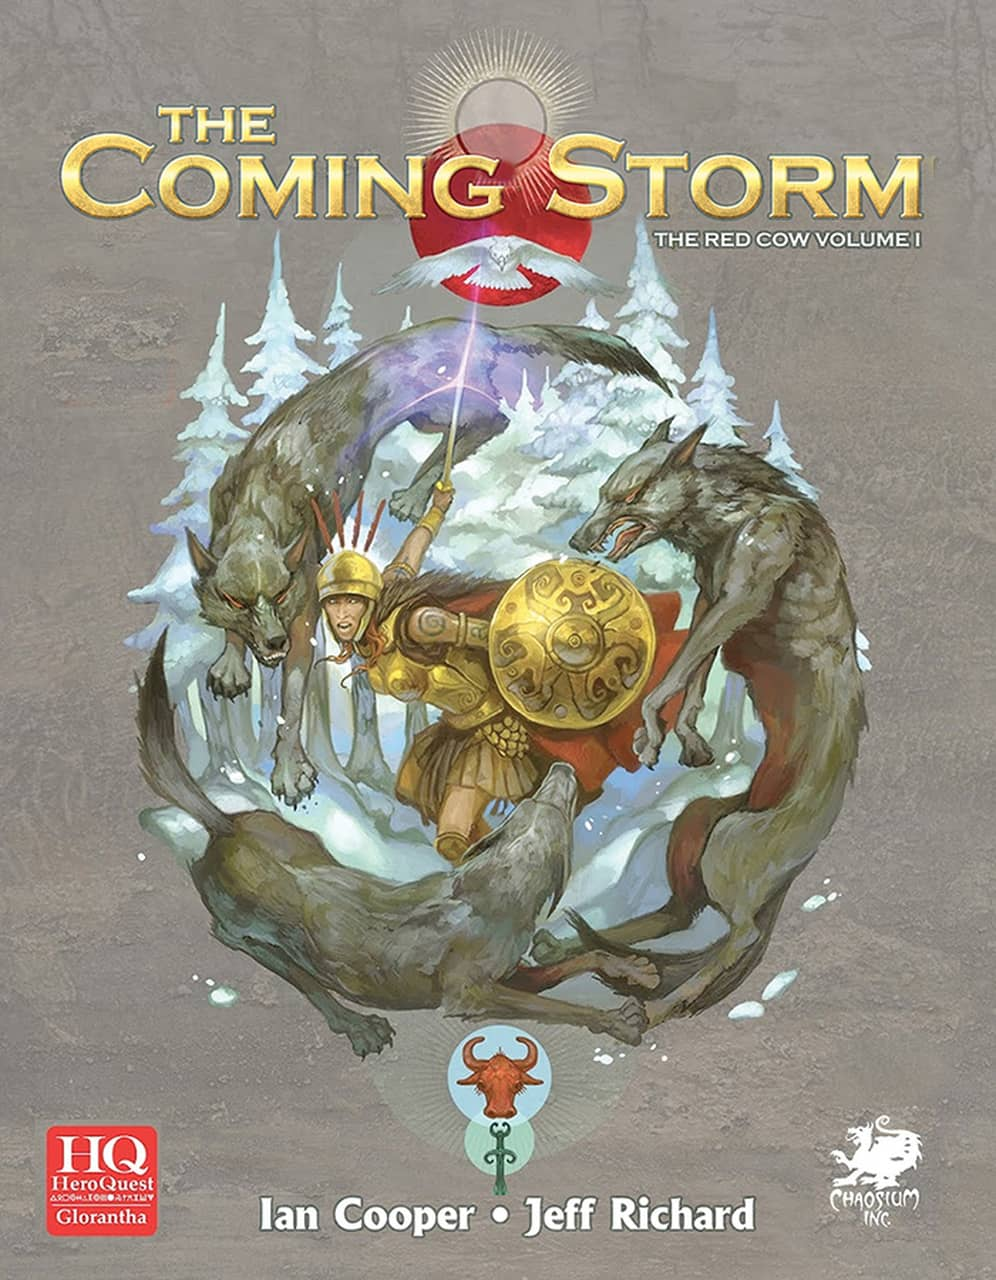 https://www.blackgate.com/wp-content/uploads/2020/07/The-Coming-Storm-Chaosium.jpg